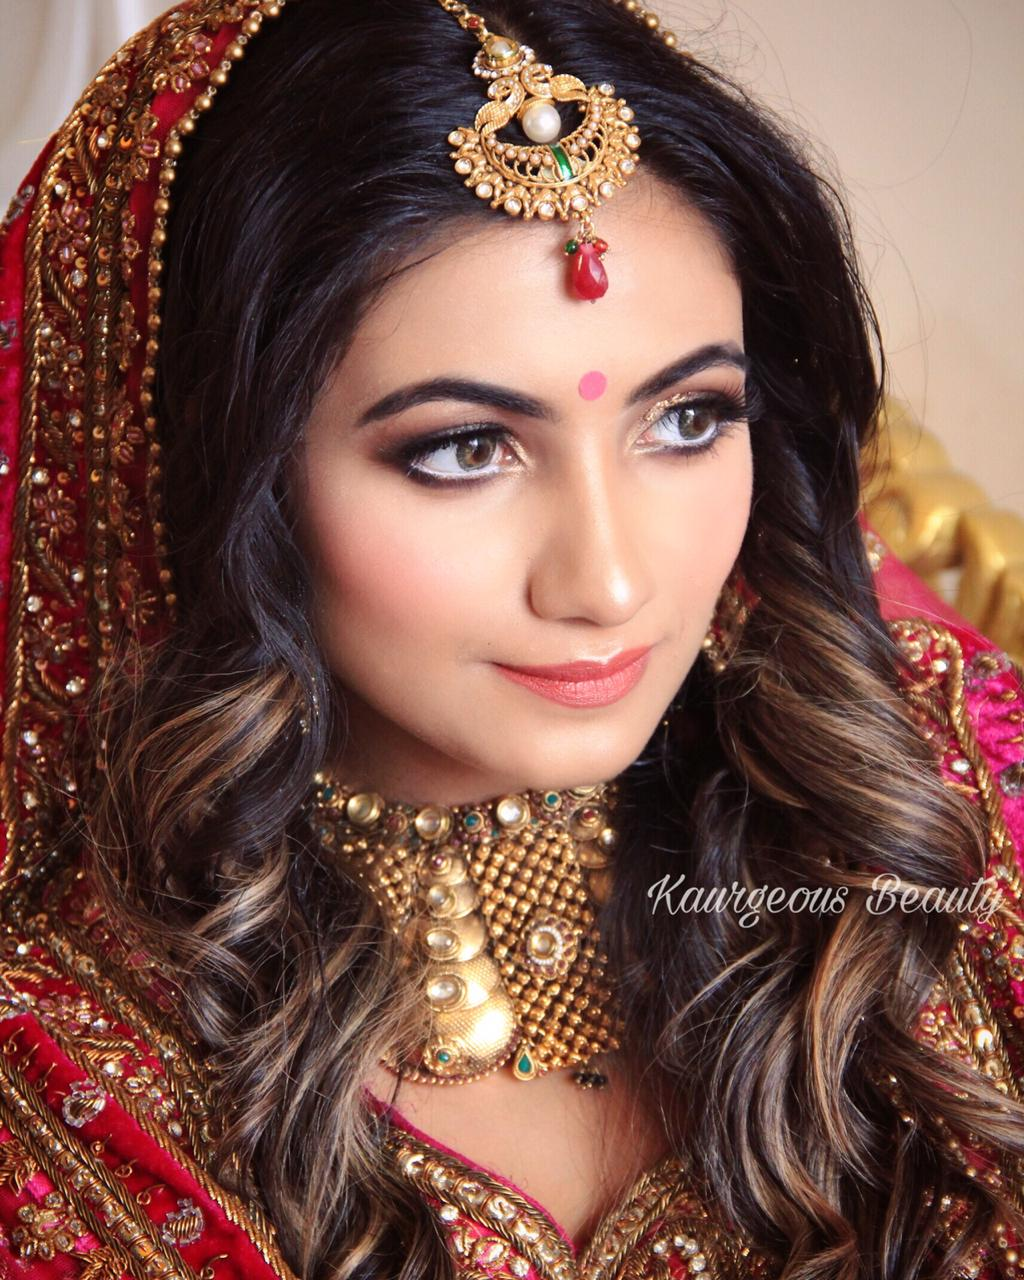 kaurgeous-makeovers-makeup-artist-chandigarh